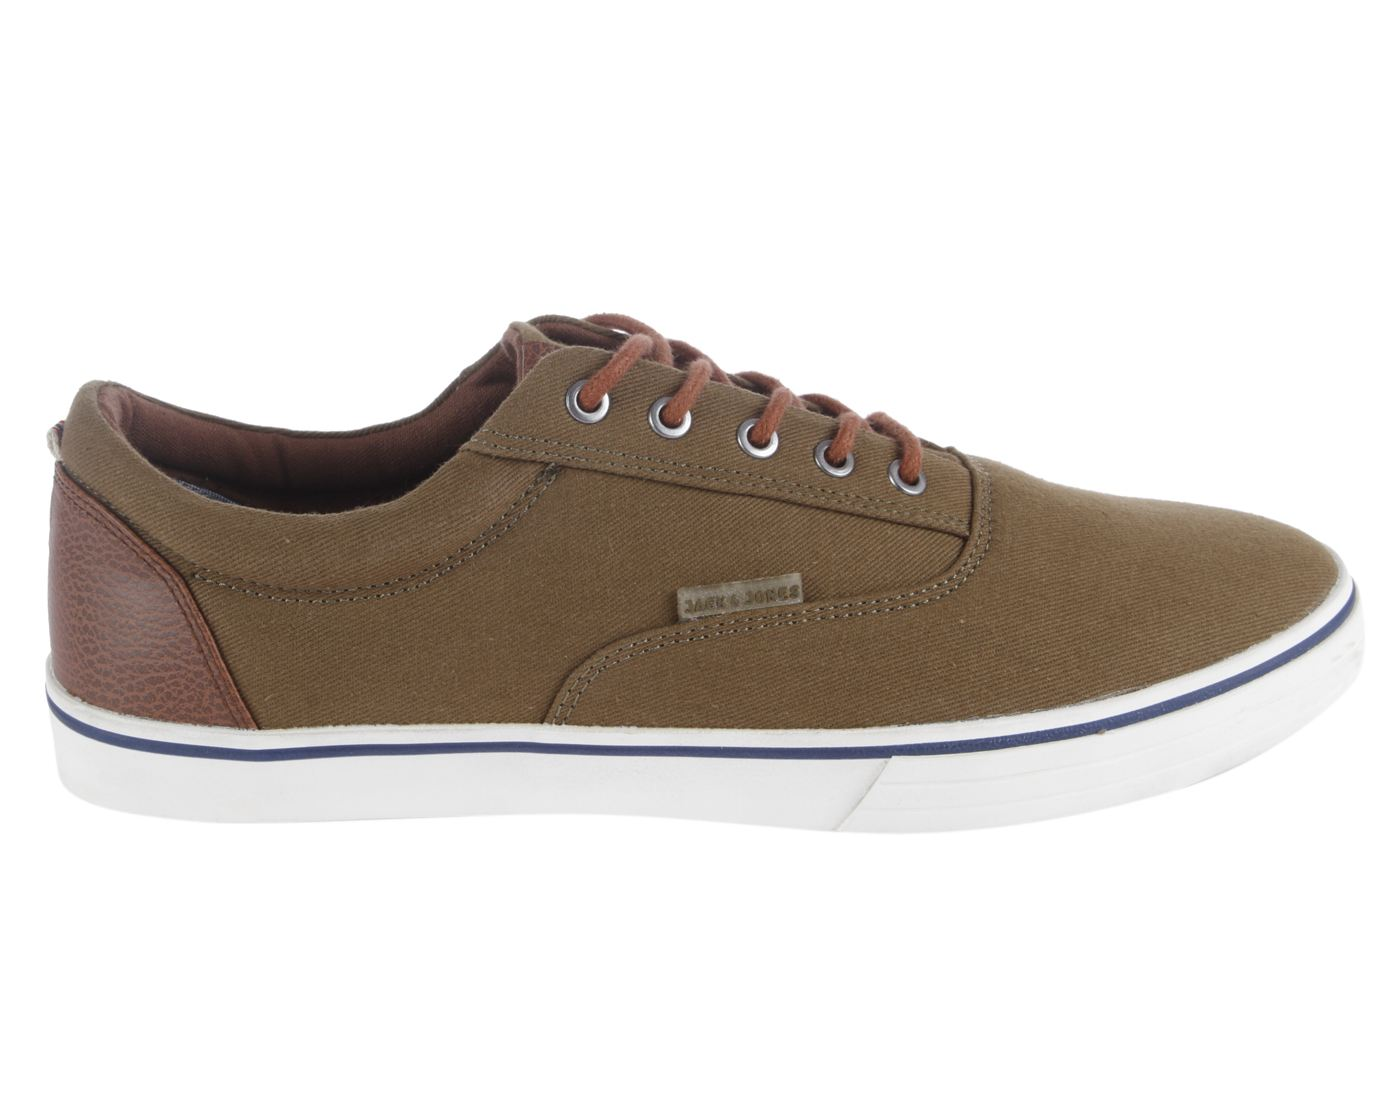 Jack & Jones Dusty Olive Leather  (Rubber Sole) Lace-up Sneakers